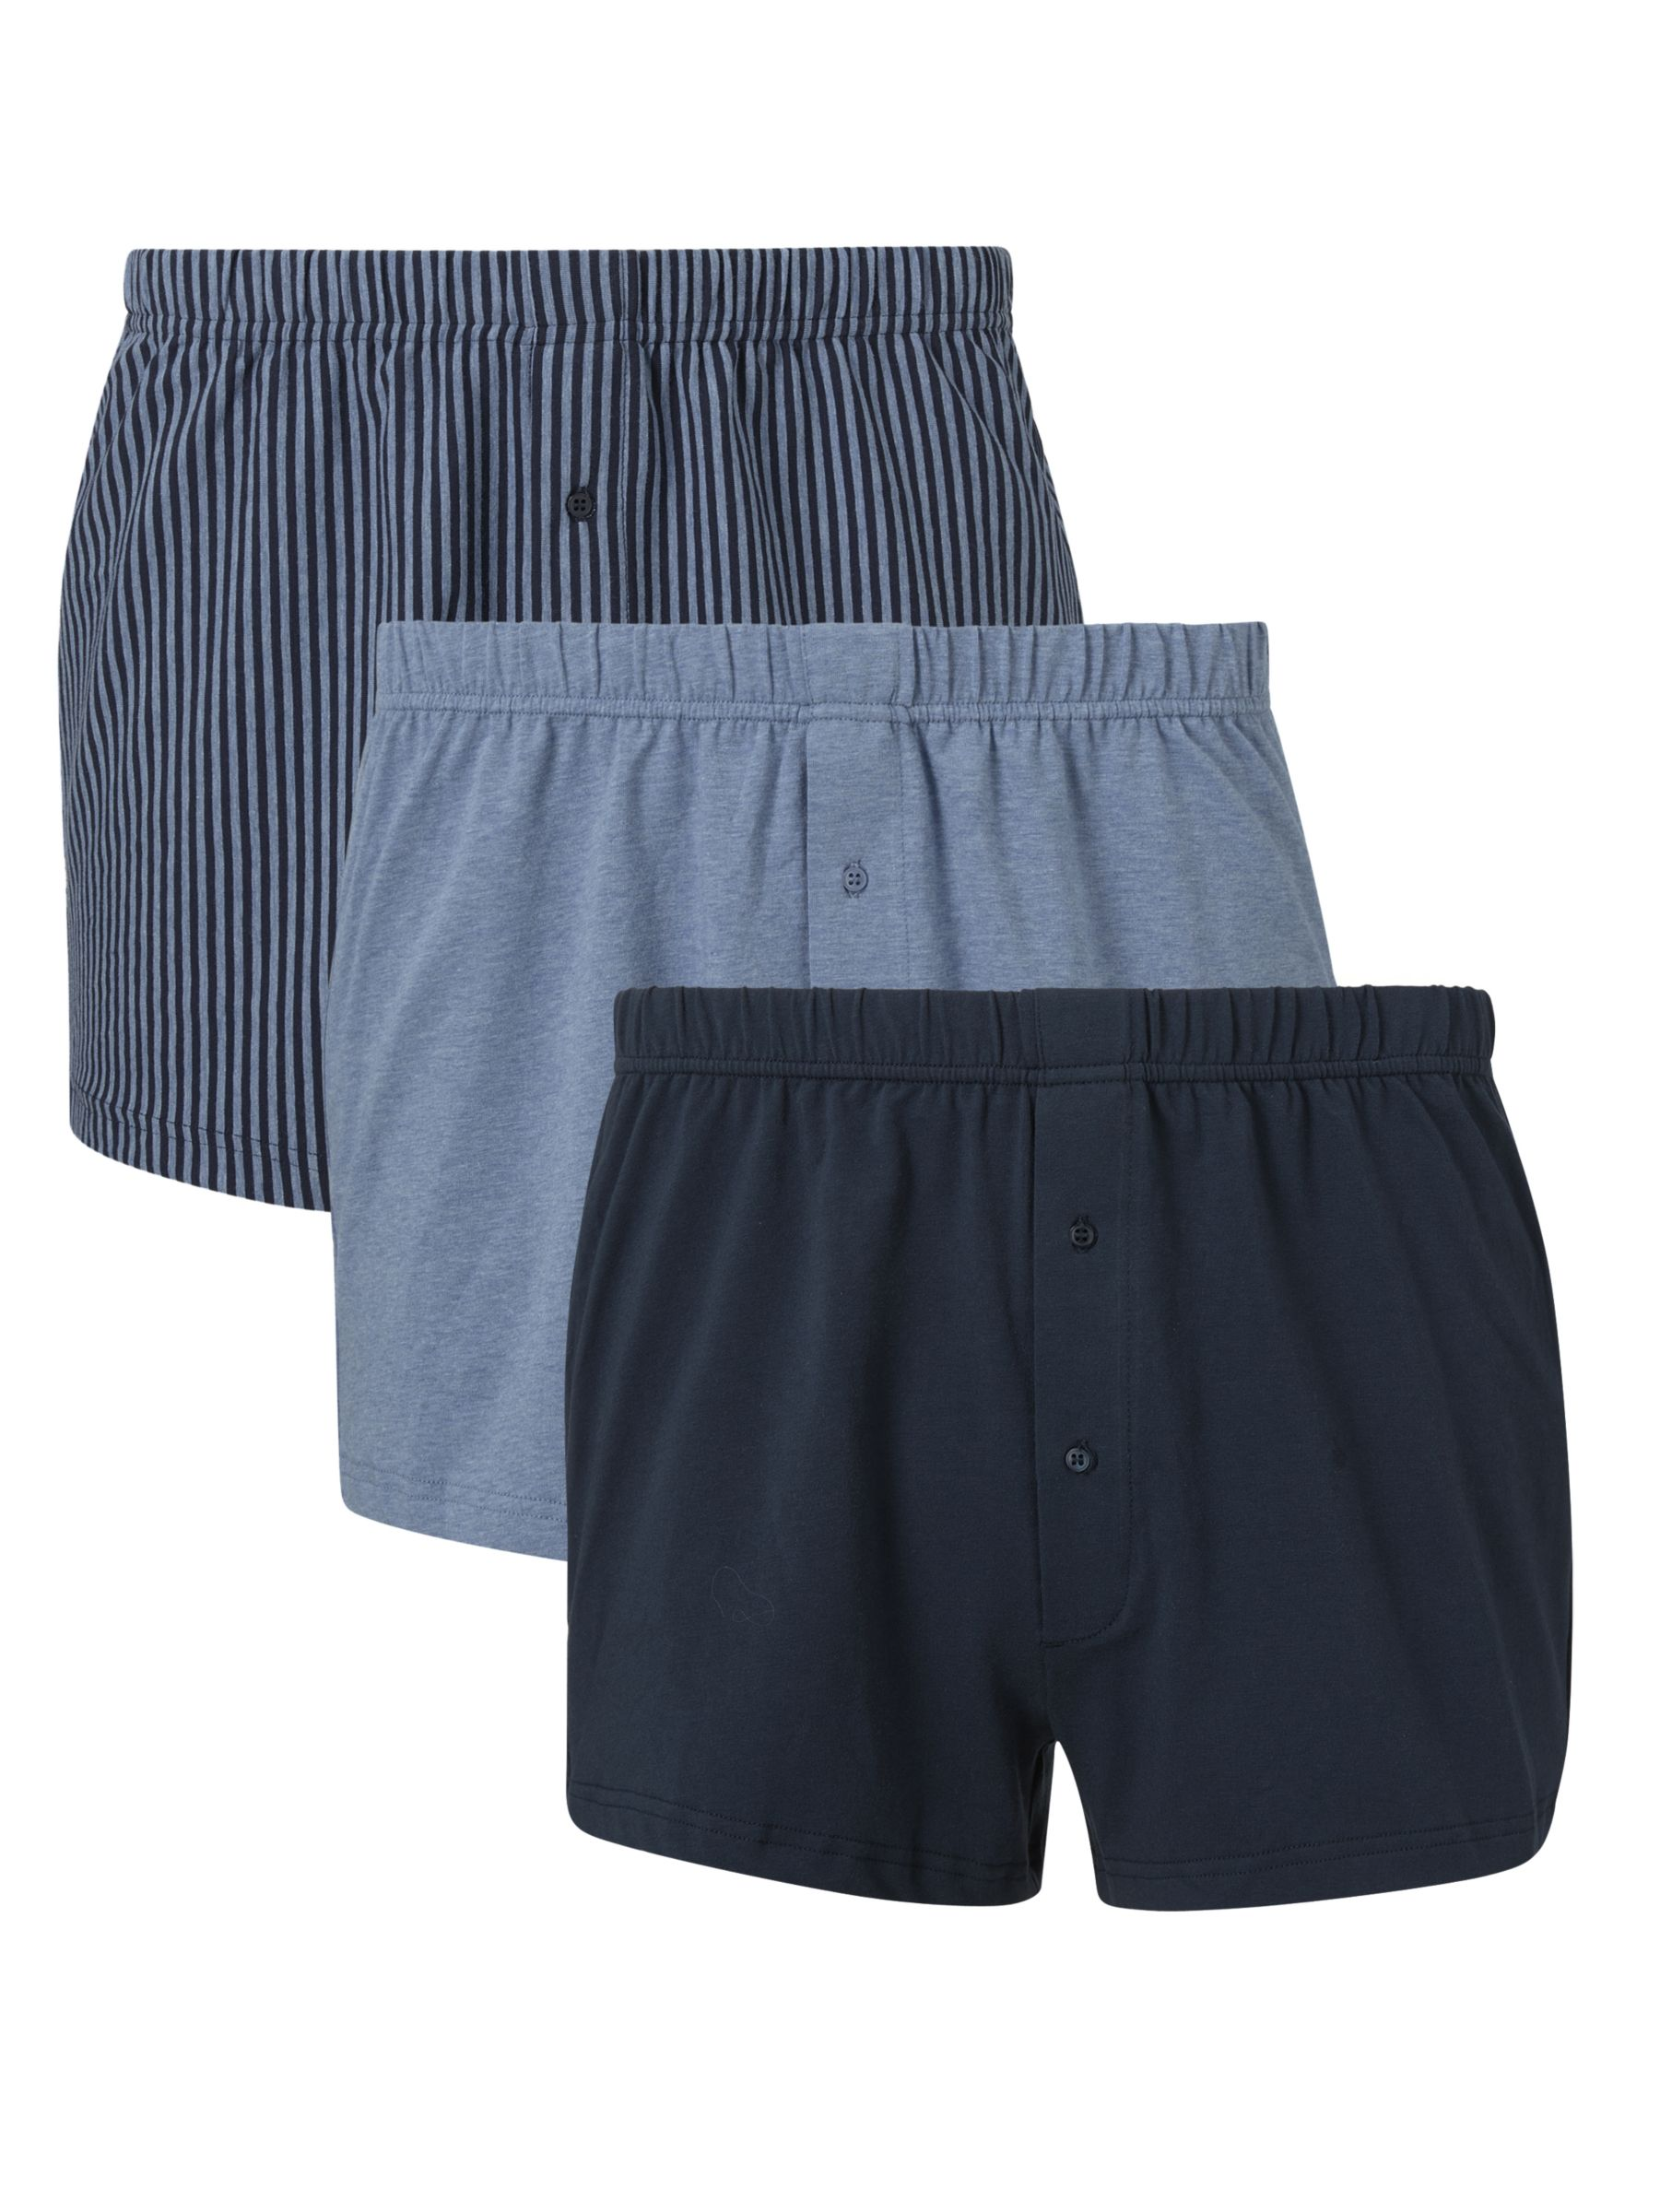 John Lewis & Partners John Lewis & Partners Organic Cotton Jersey Double Button Boxers, Pack of 3, Blue/Multi